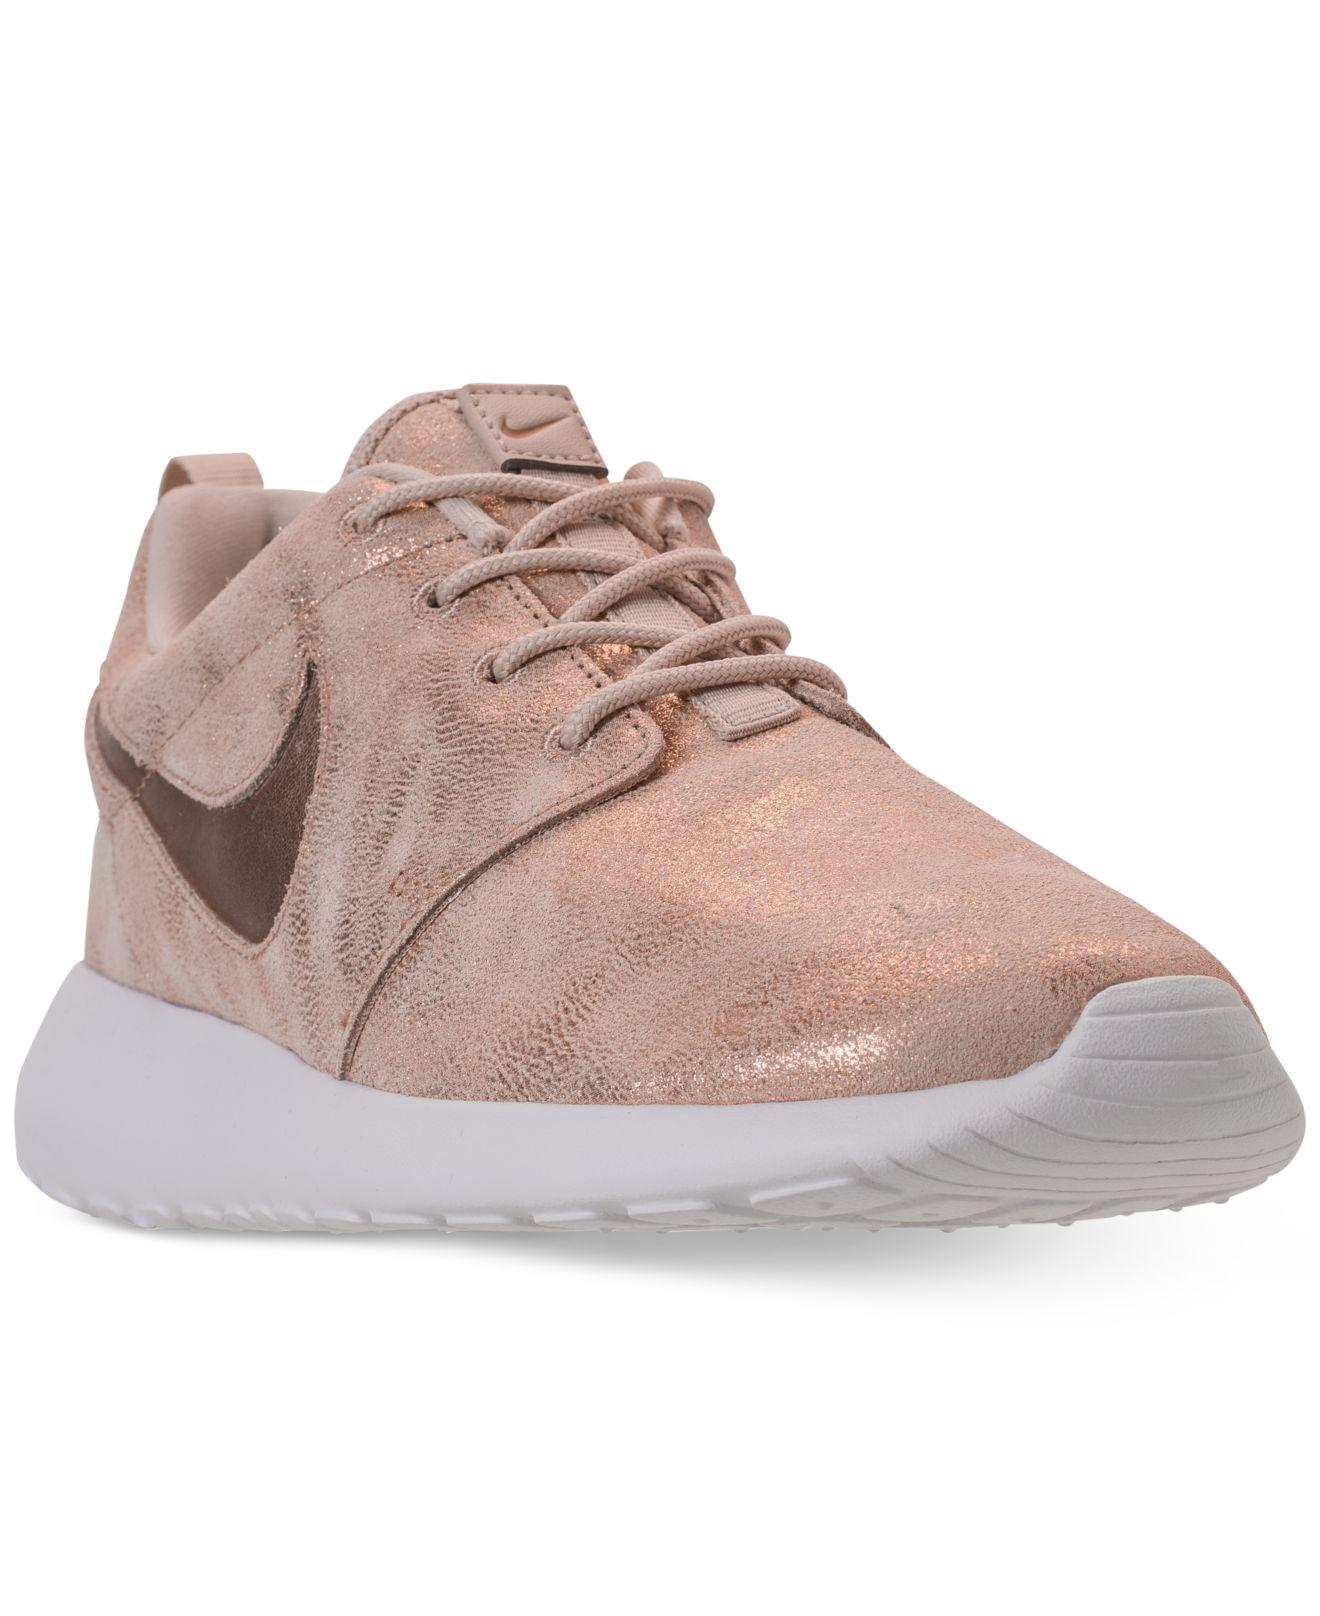 373563dd9c3e Lyst - Nike Roshe One Premium Casual Sneakers From Finish Line